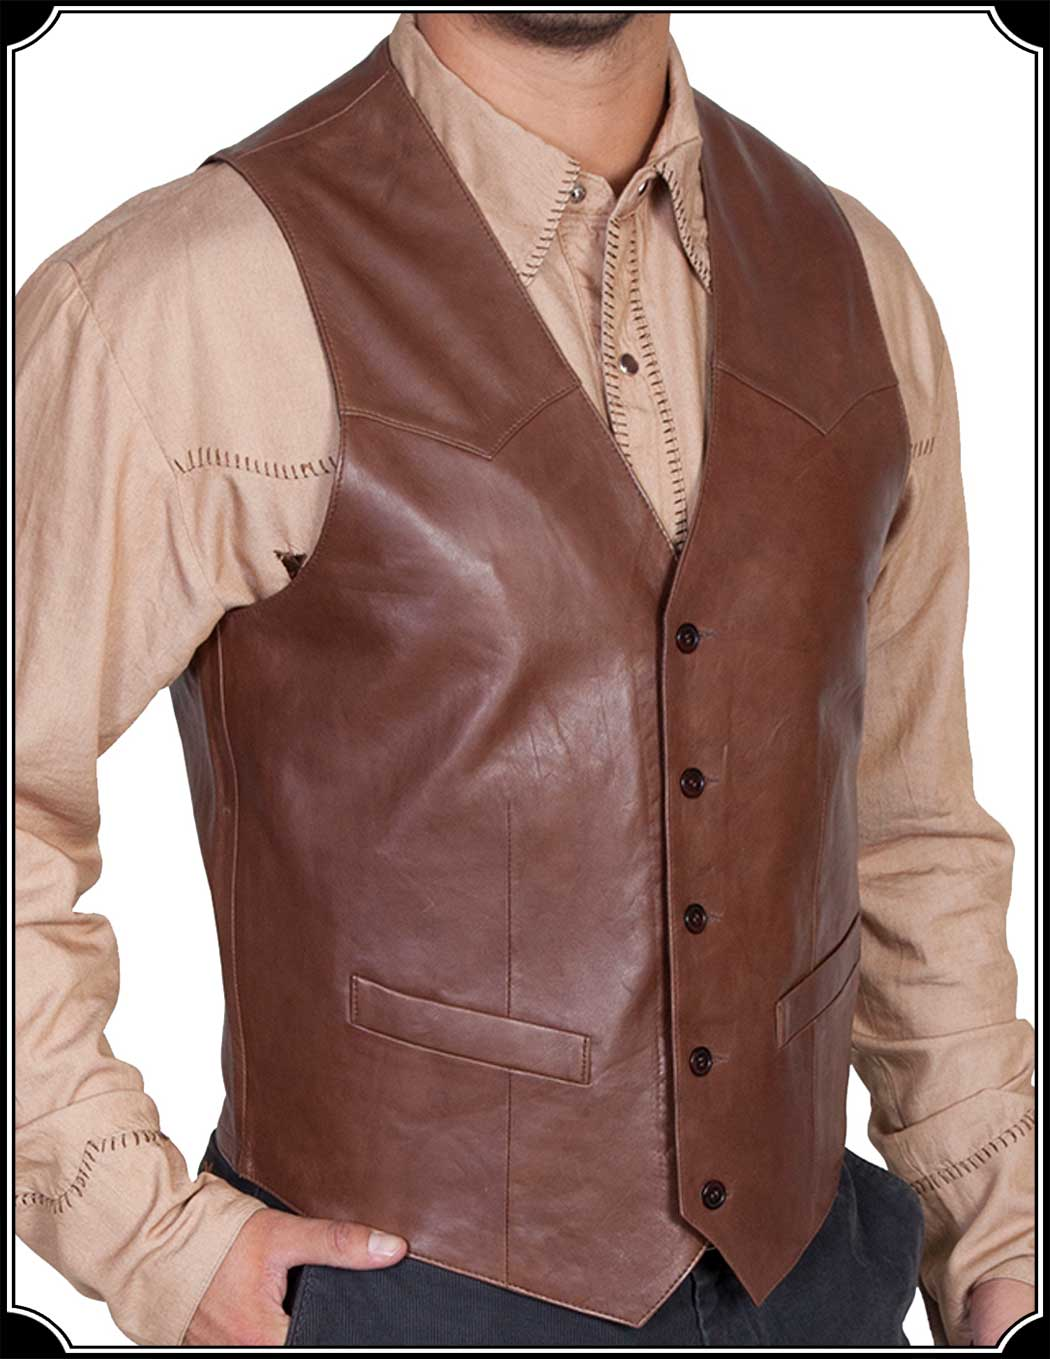 Office casual leather vest outfit